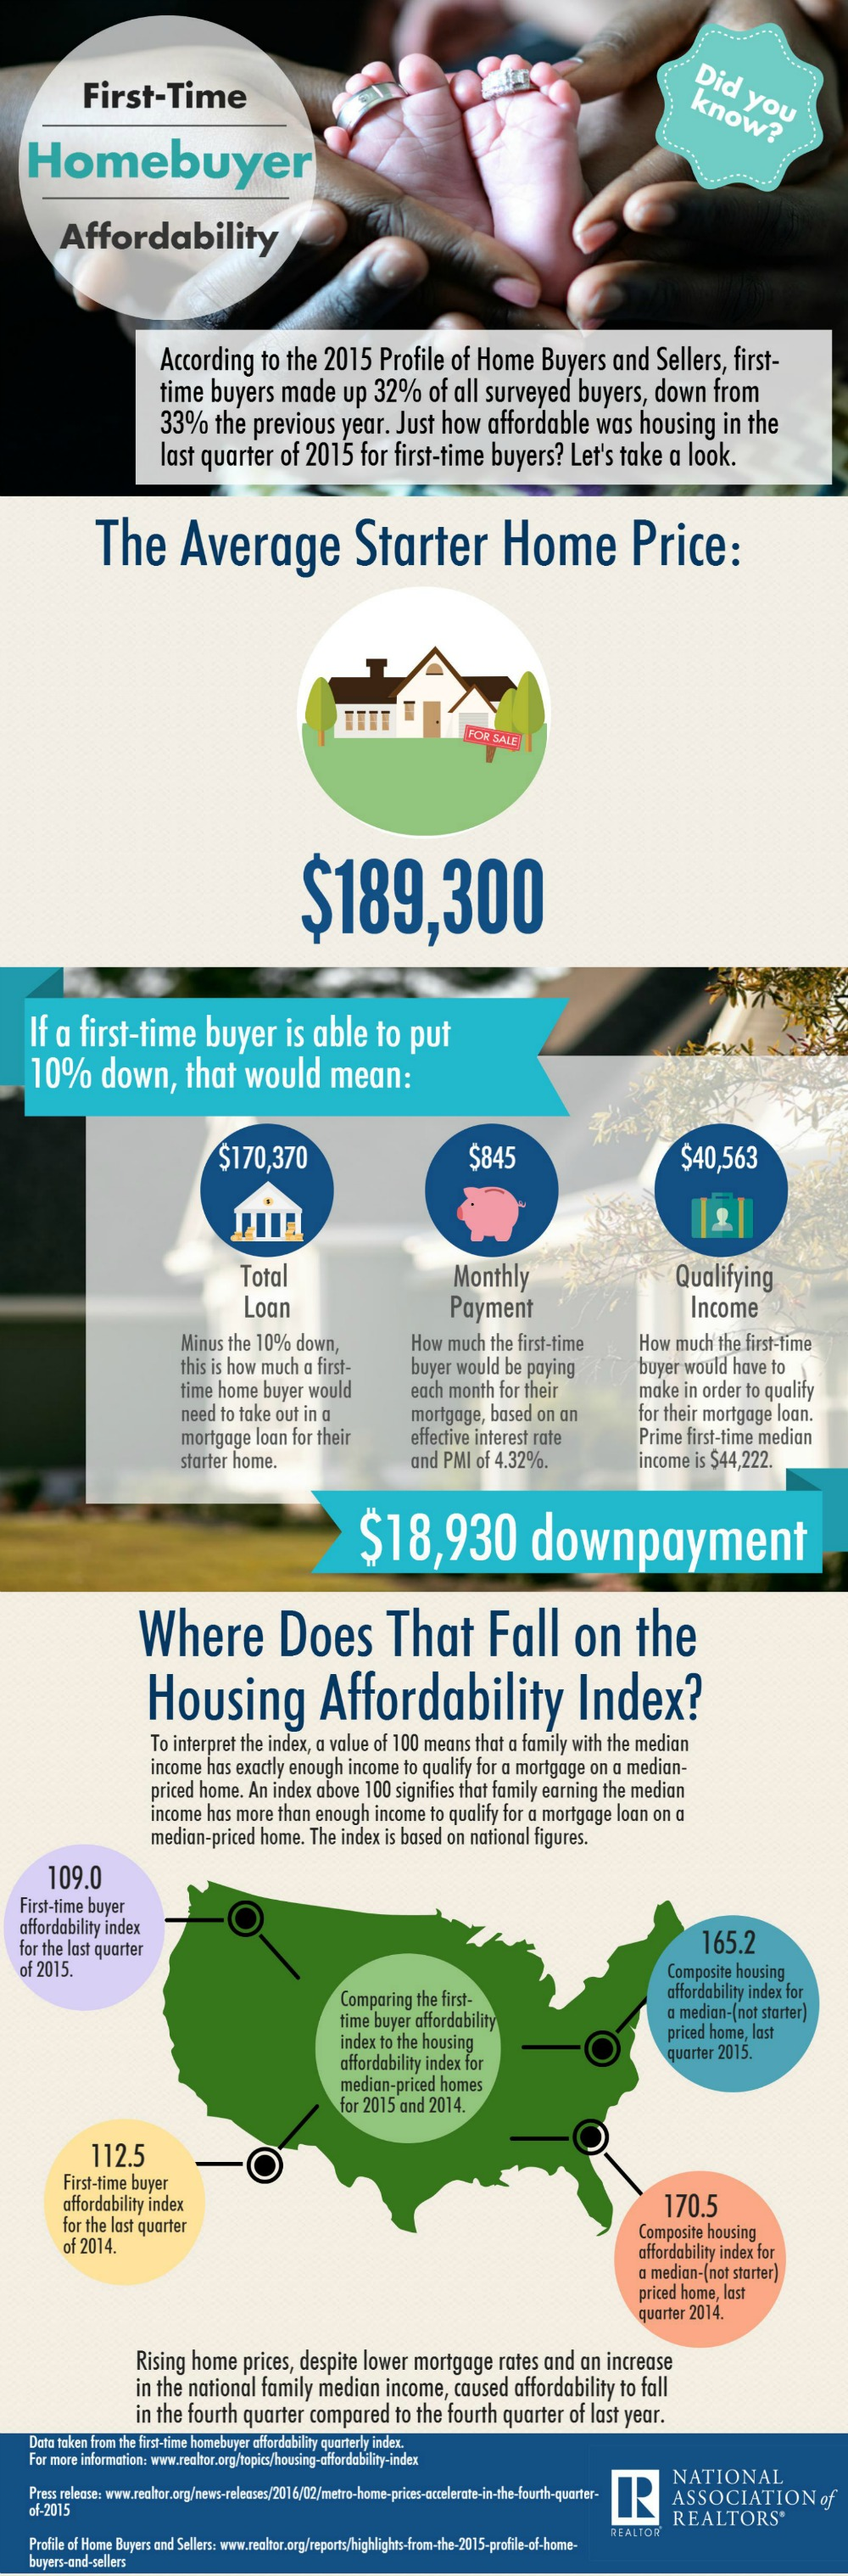 first-time-affordability-infographic-2016-02-18-full